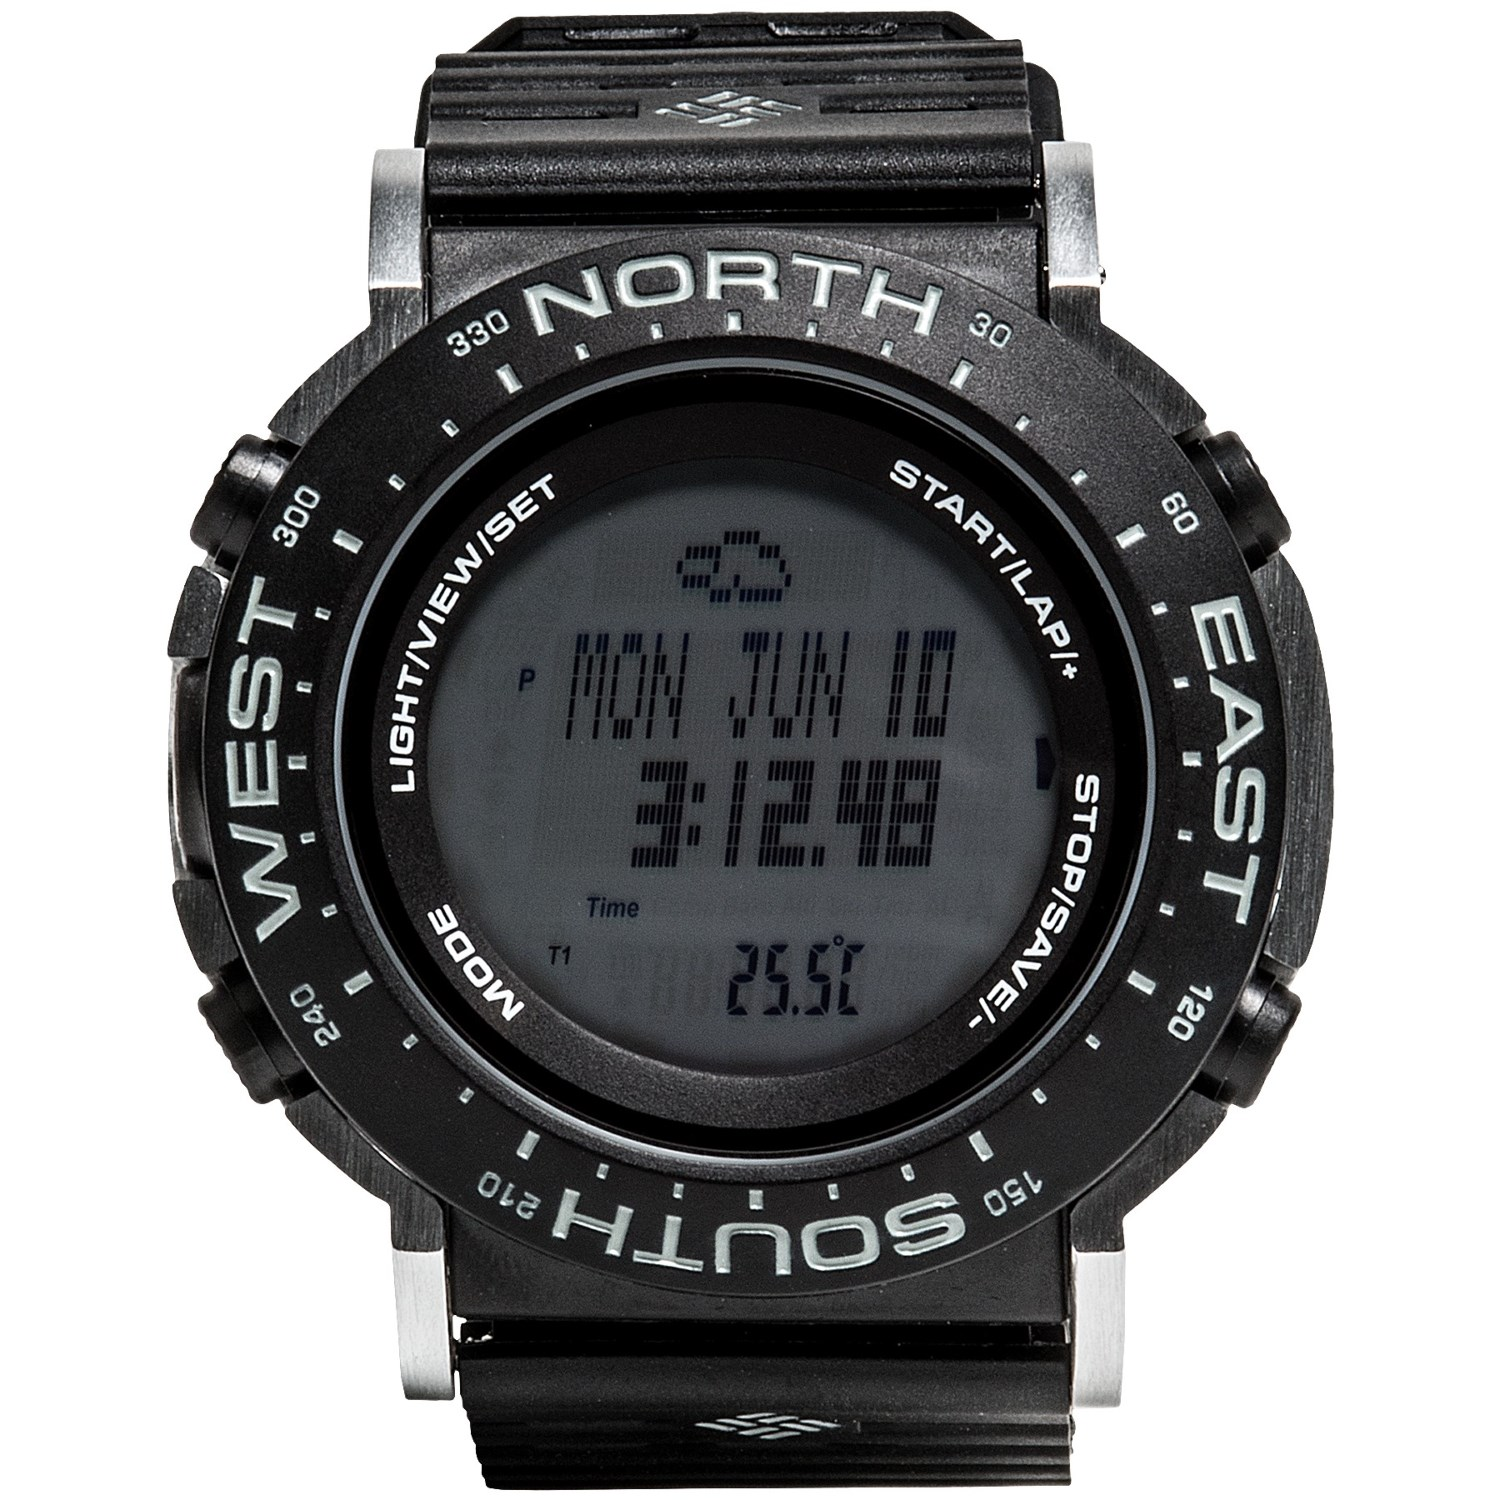 Treeline Digital Watch | Columbia.com